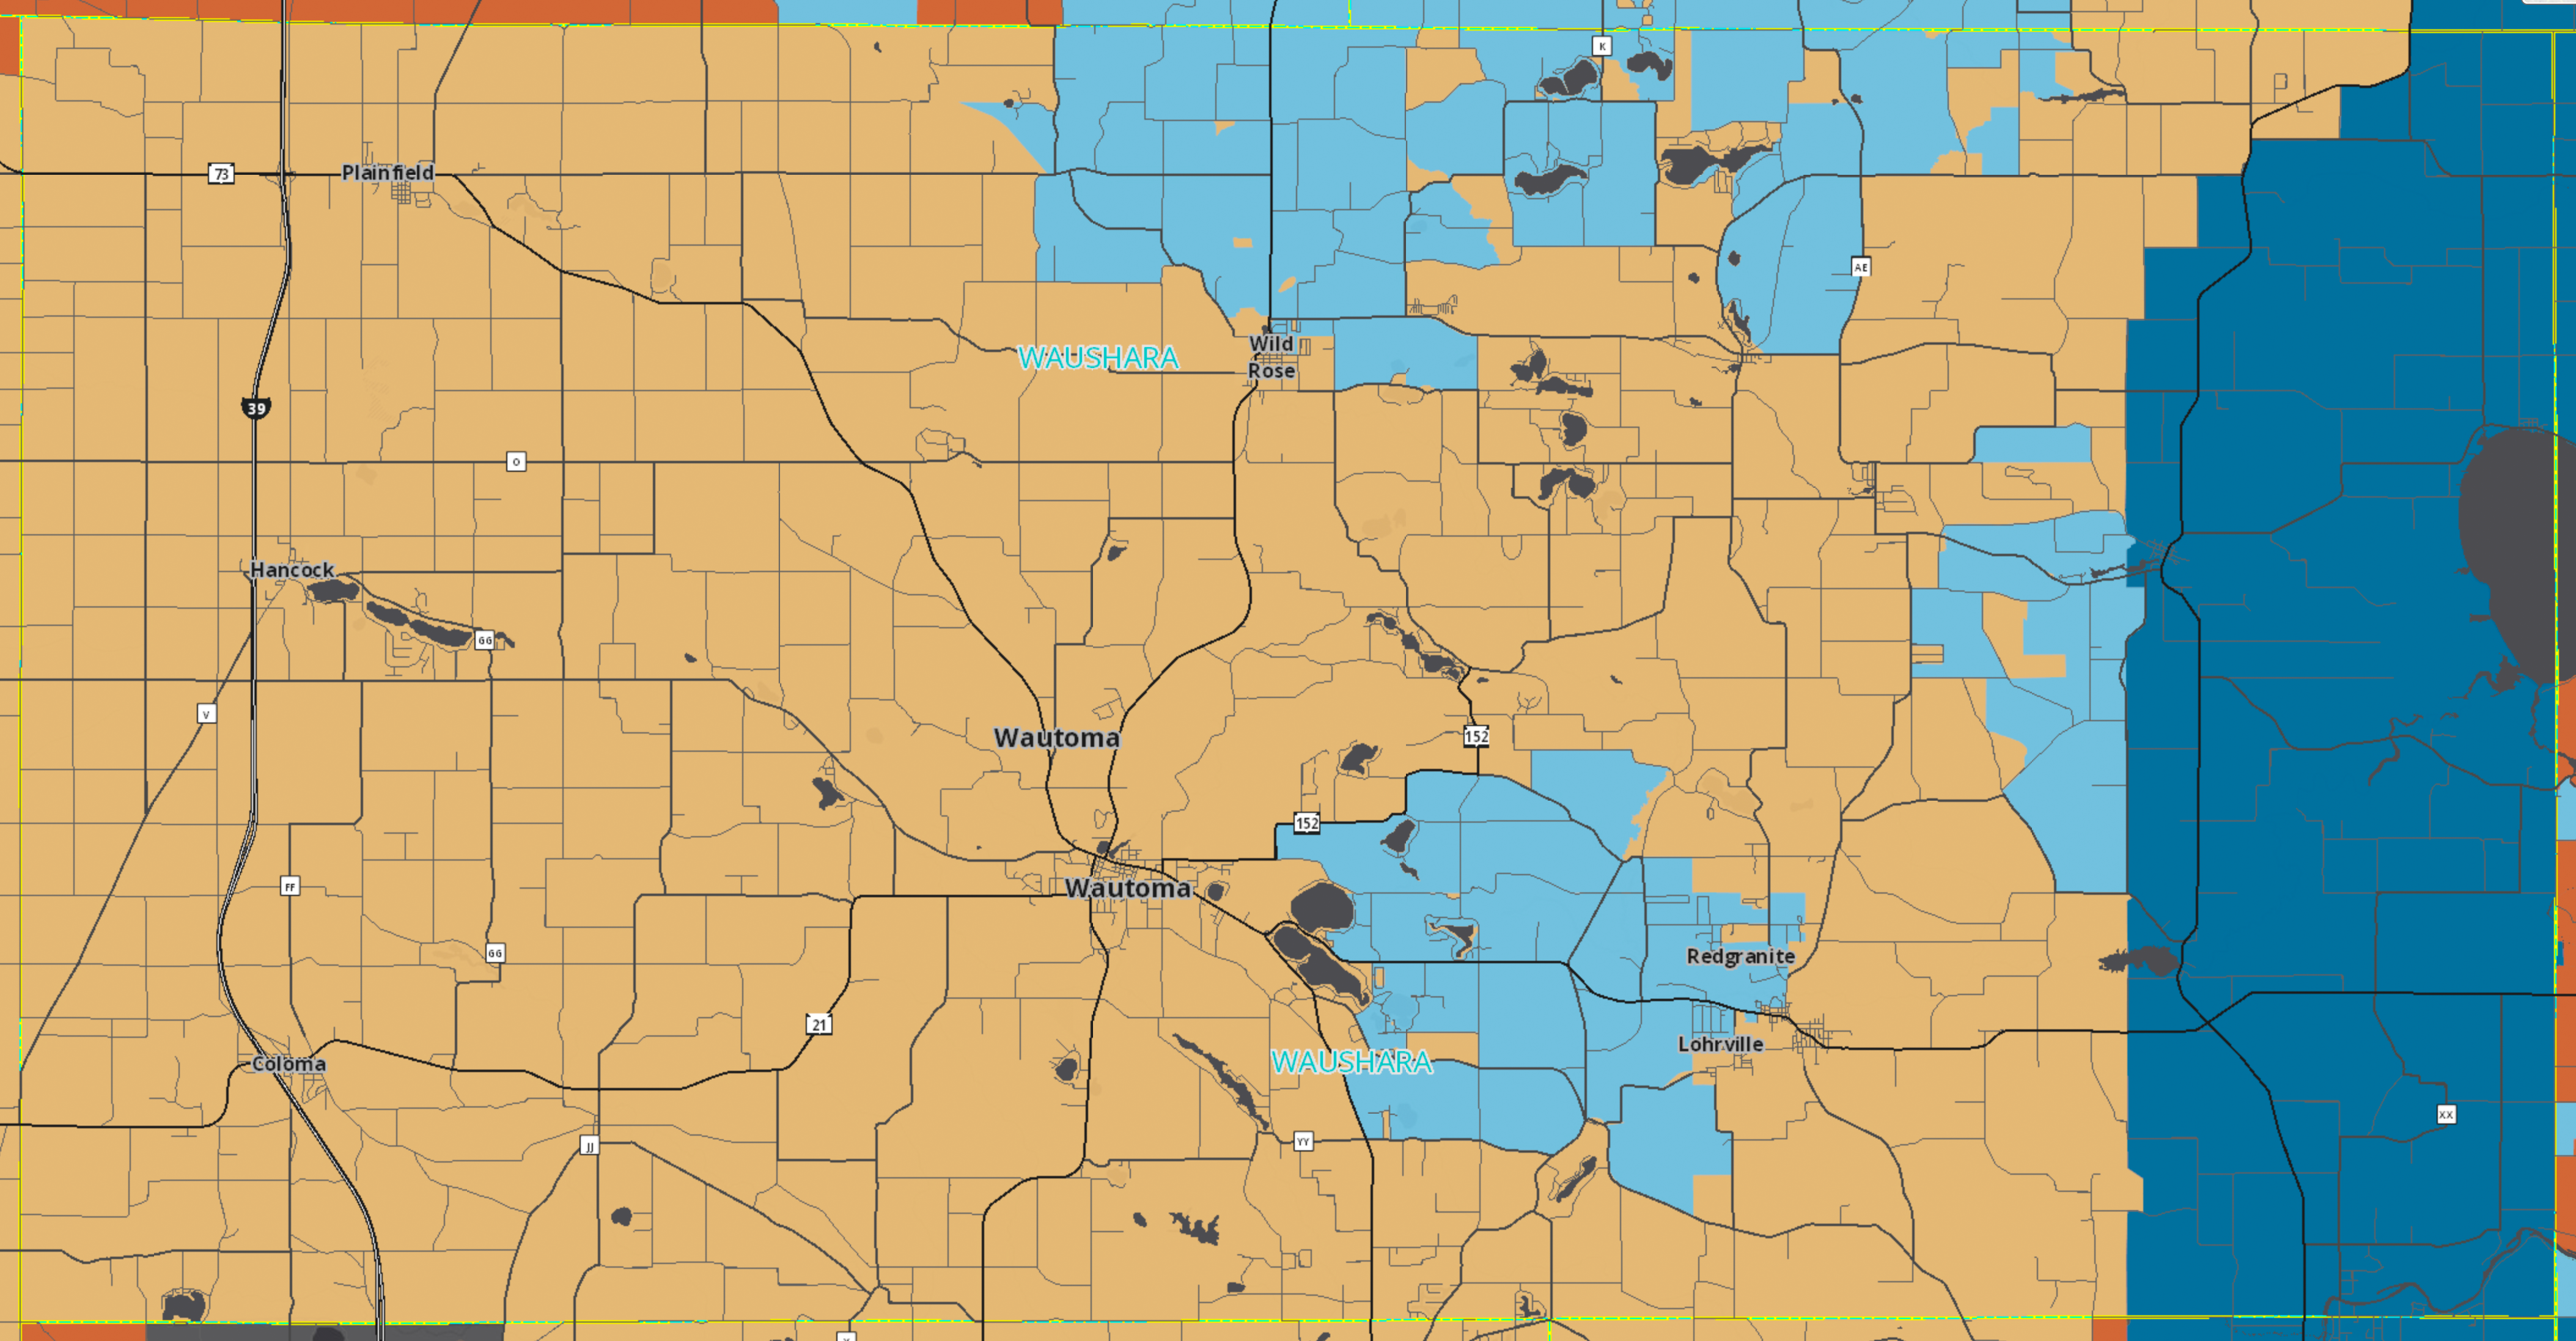 A screenshot of a wireless coverage map for Waushara County, Wisconsin with a color overlay. Most of the overlay is colored tan, which represents areas of the county which have downlink speeds between 3 and 9.99 megabits per second. There are sparse light blue and dark blue areas which indicate faster service, but are far from being the majority of the county.